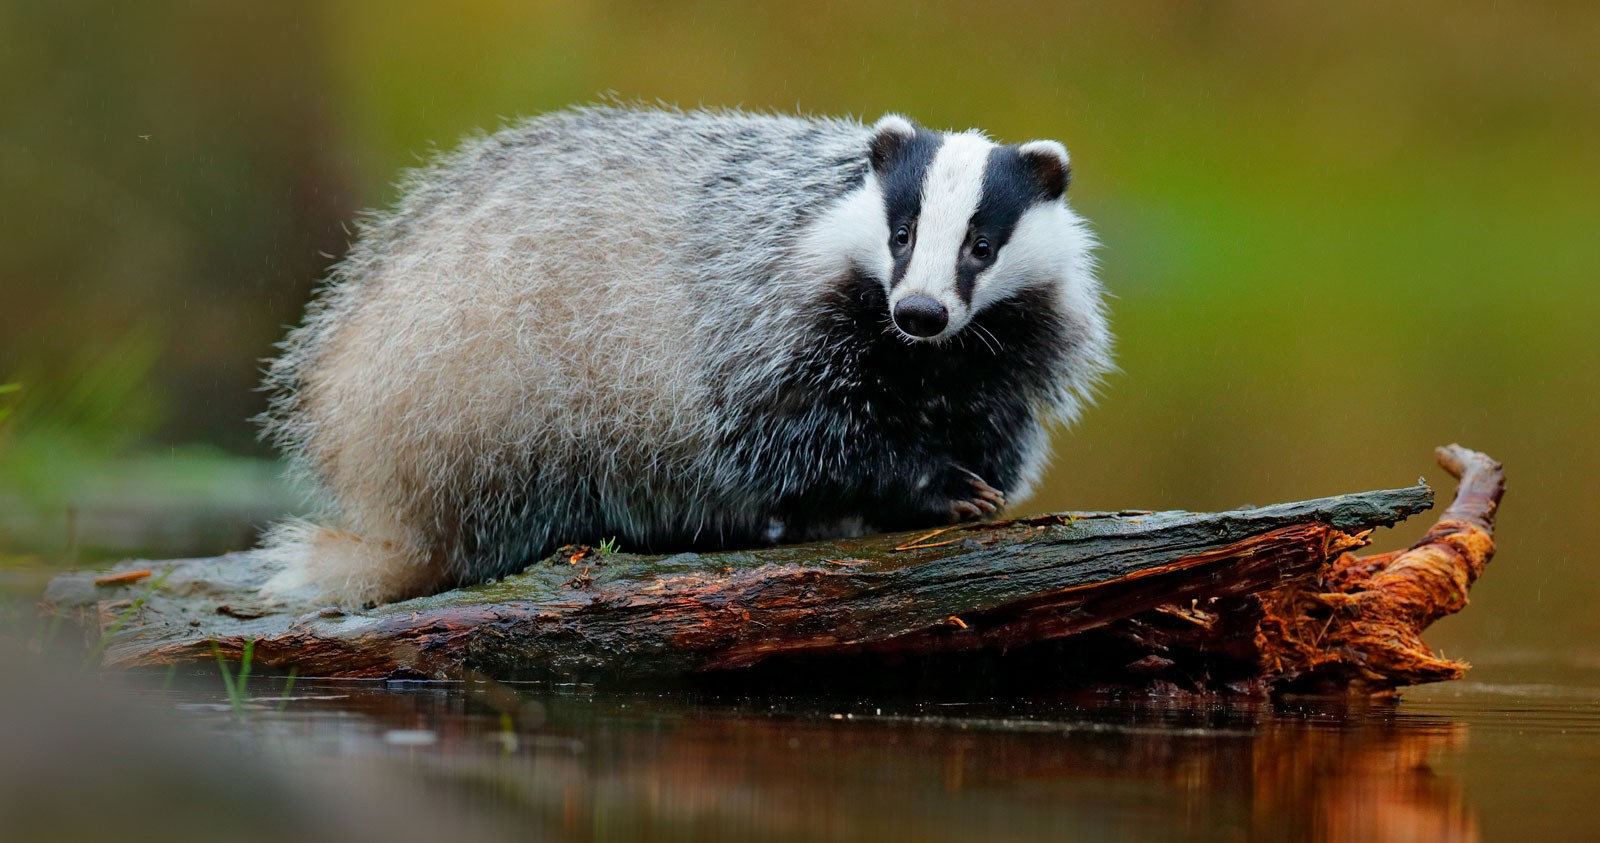 Badger Animal Symbolism On Whats Your Sign